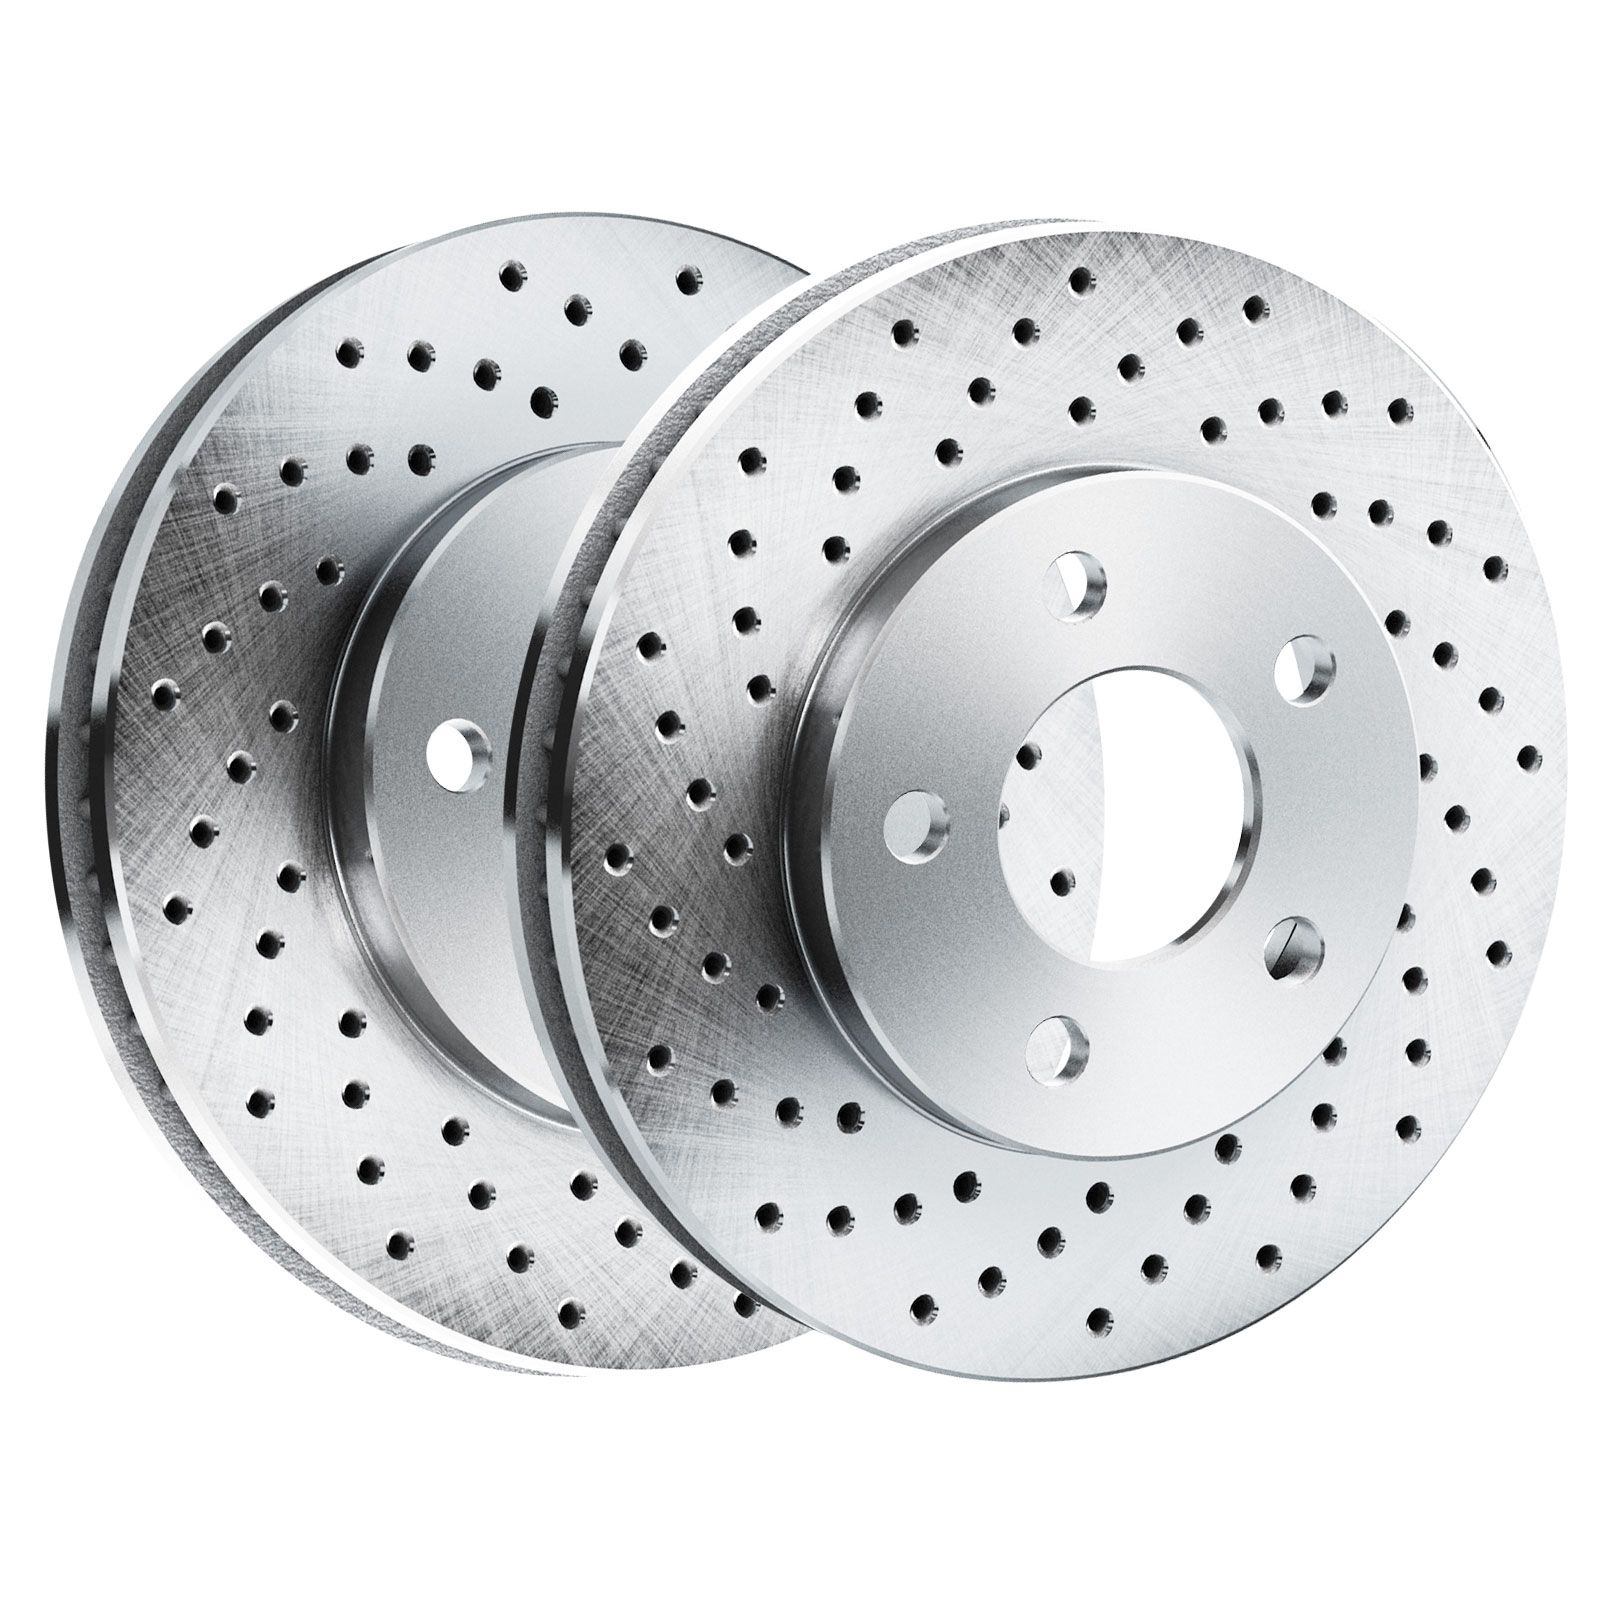 Brake Rotors POWERSPORT *CROSS DRILLED* Disc BL45200 2 Rear